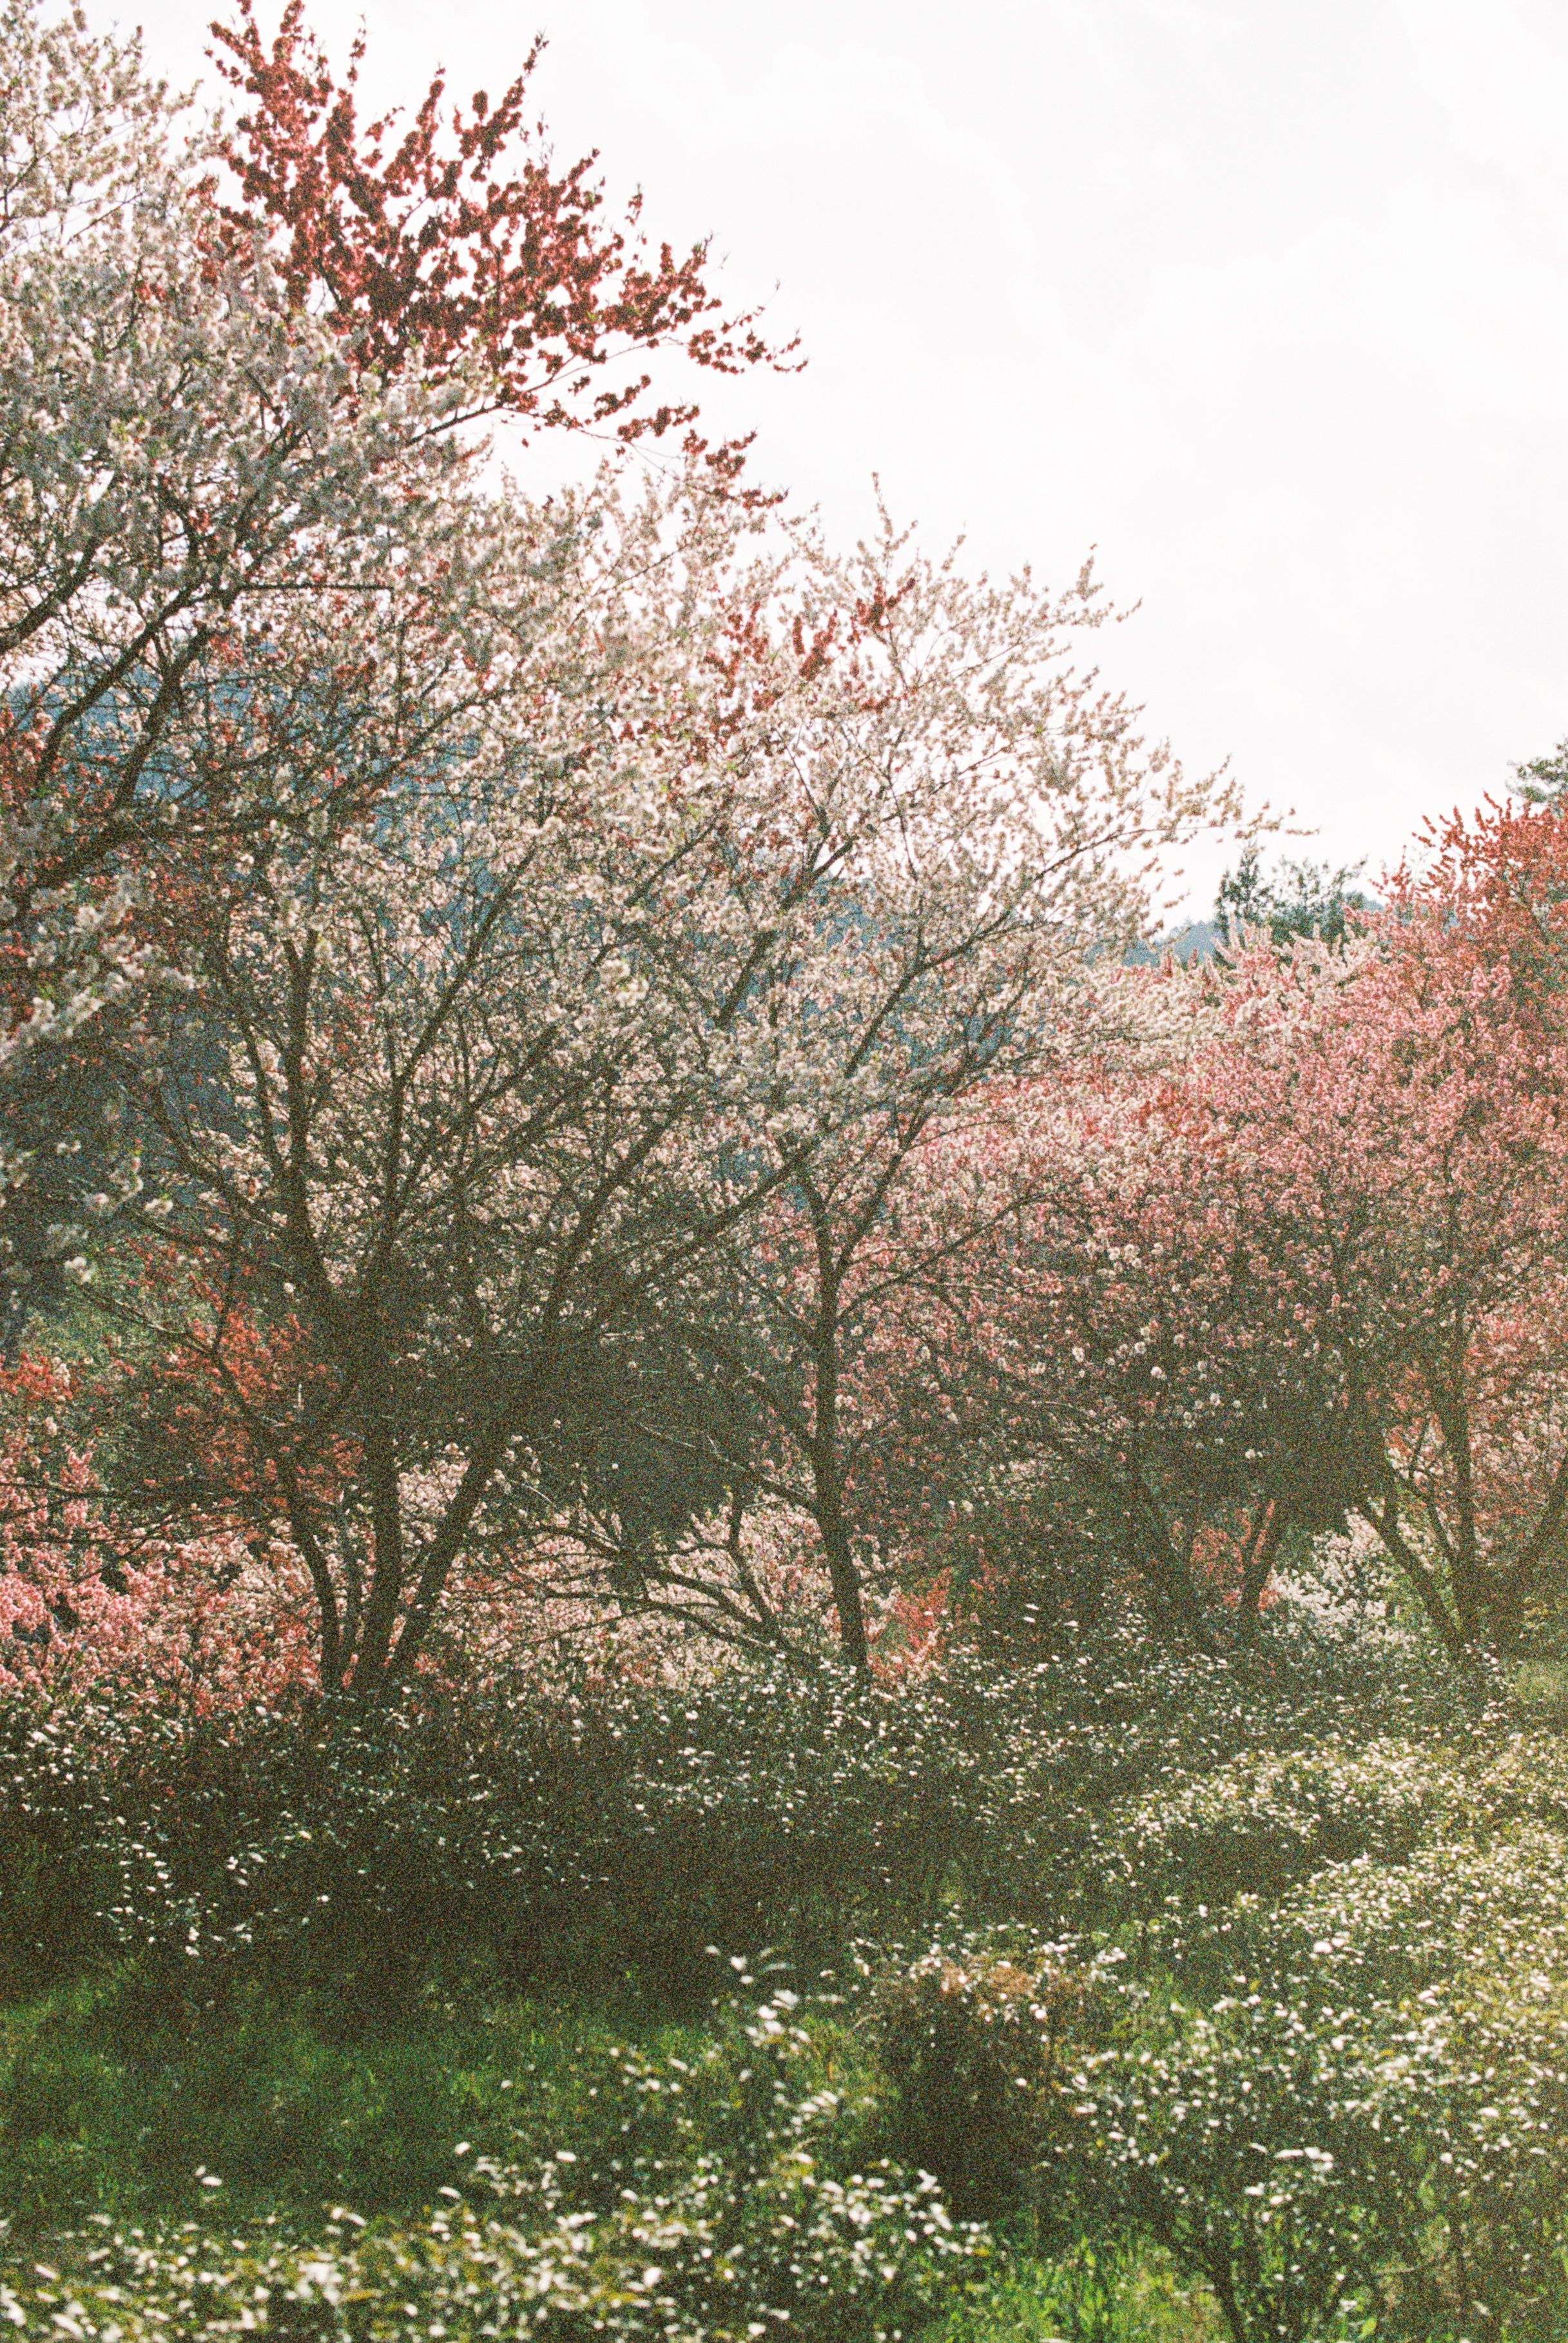 Cherry Blossoms In Japan 35mm Travel Film Photography Film Photography 35mm 35mm Photography